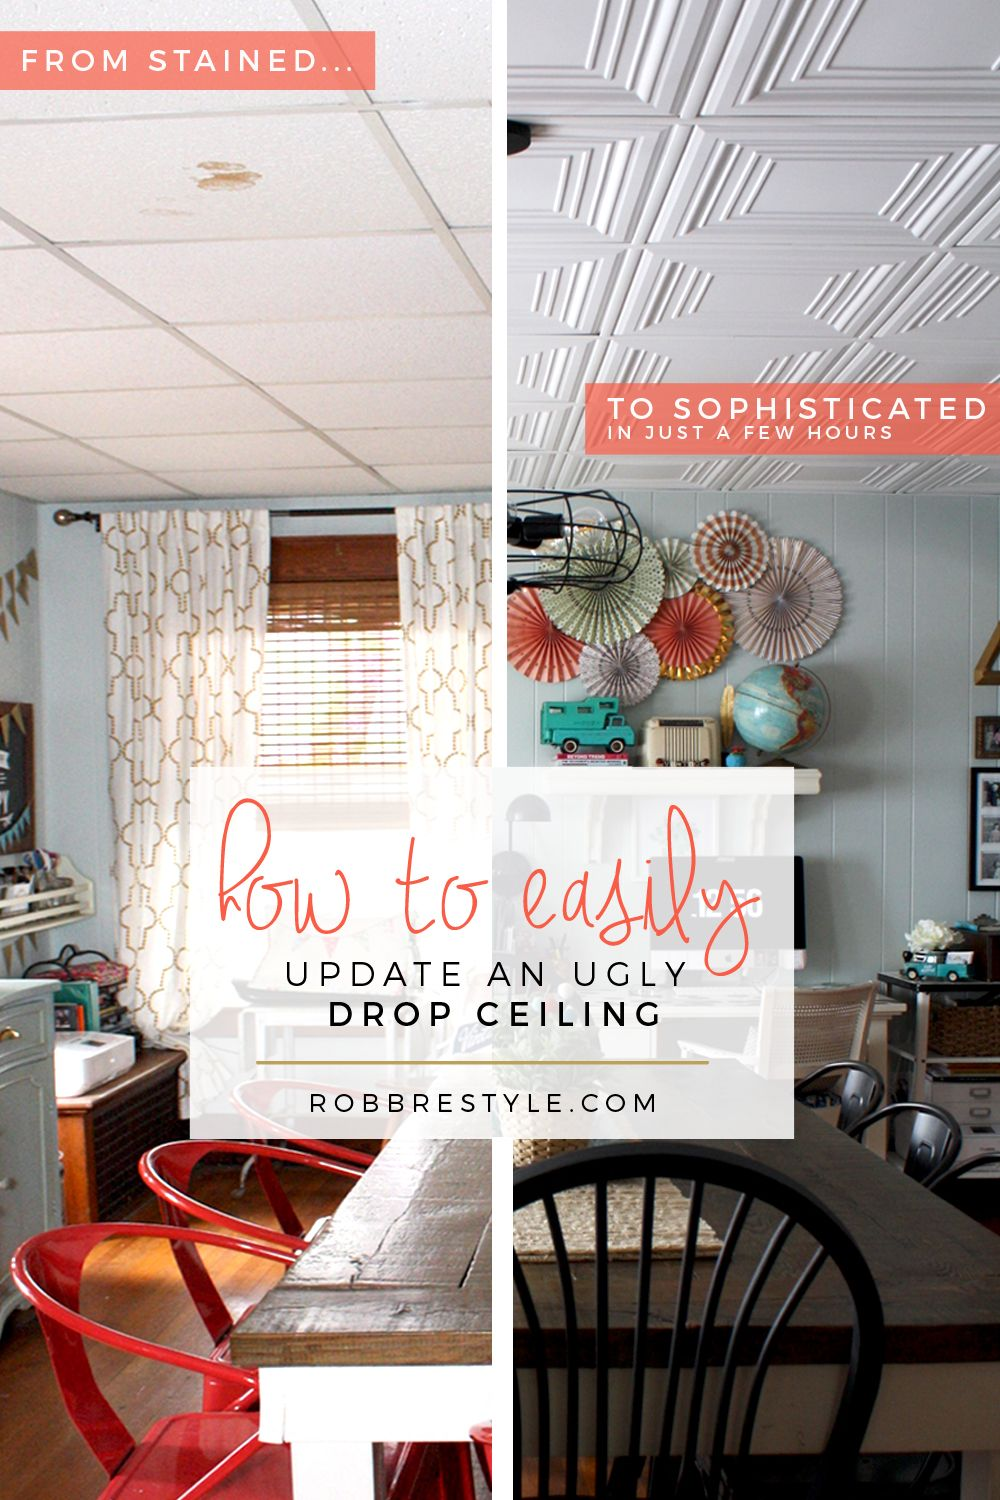 How to easily update an ugly drop ceiling ceilings basements and ceiling ideas dailygadgetfo Images